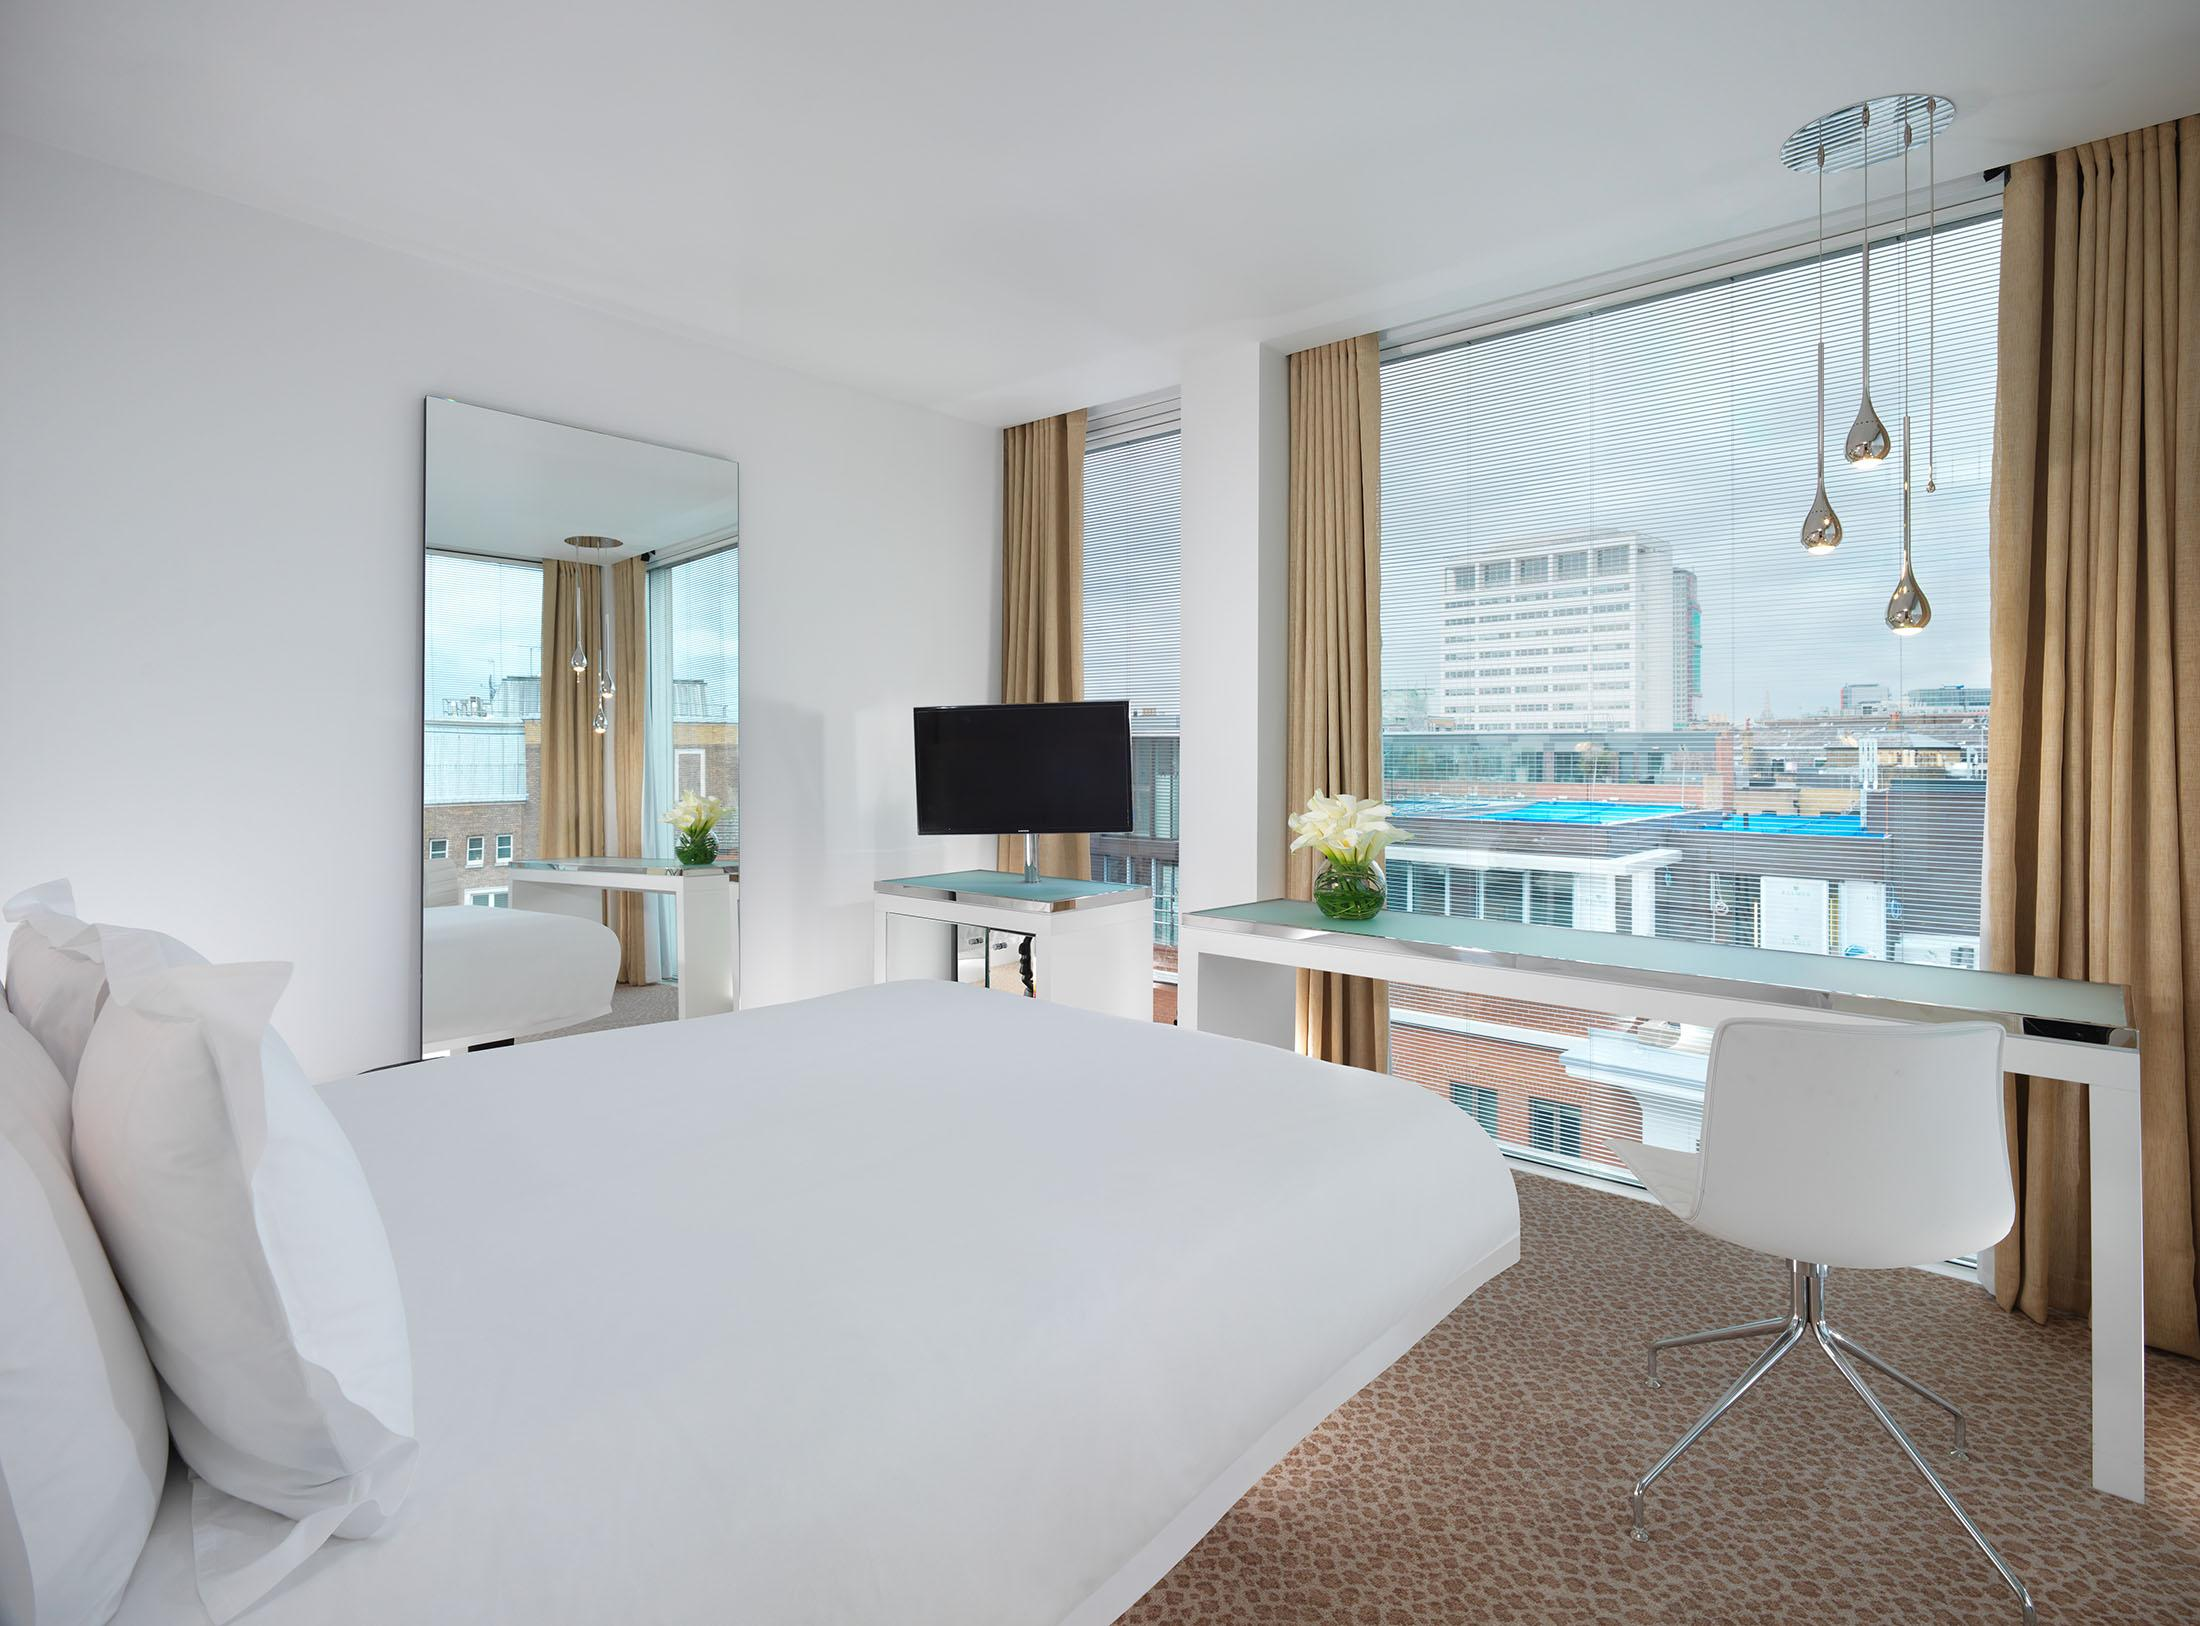 hotel room with bed and desk overlooking the city